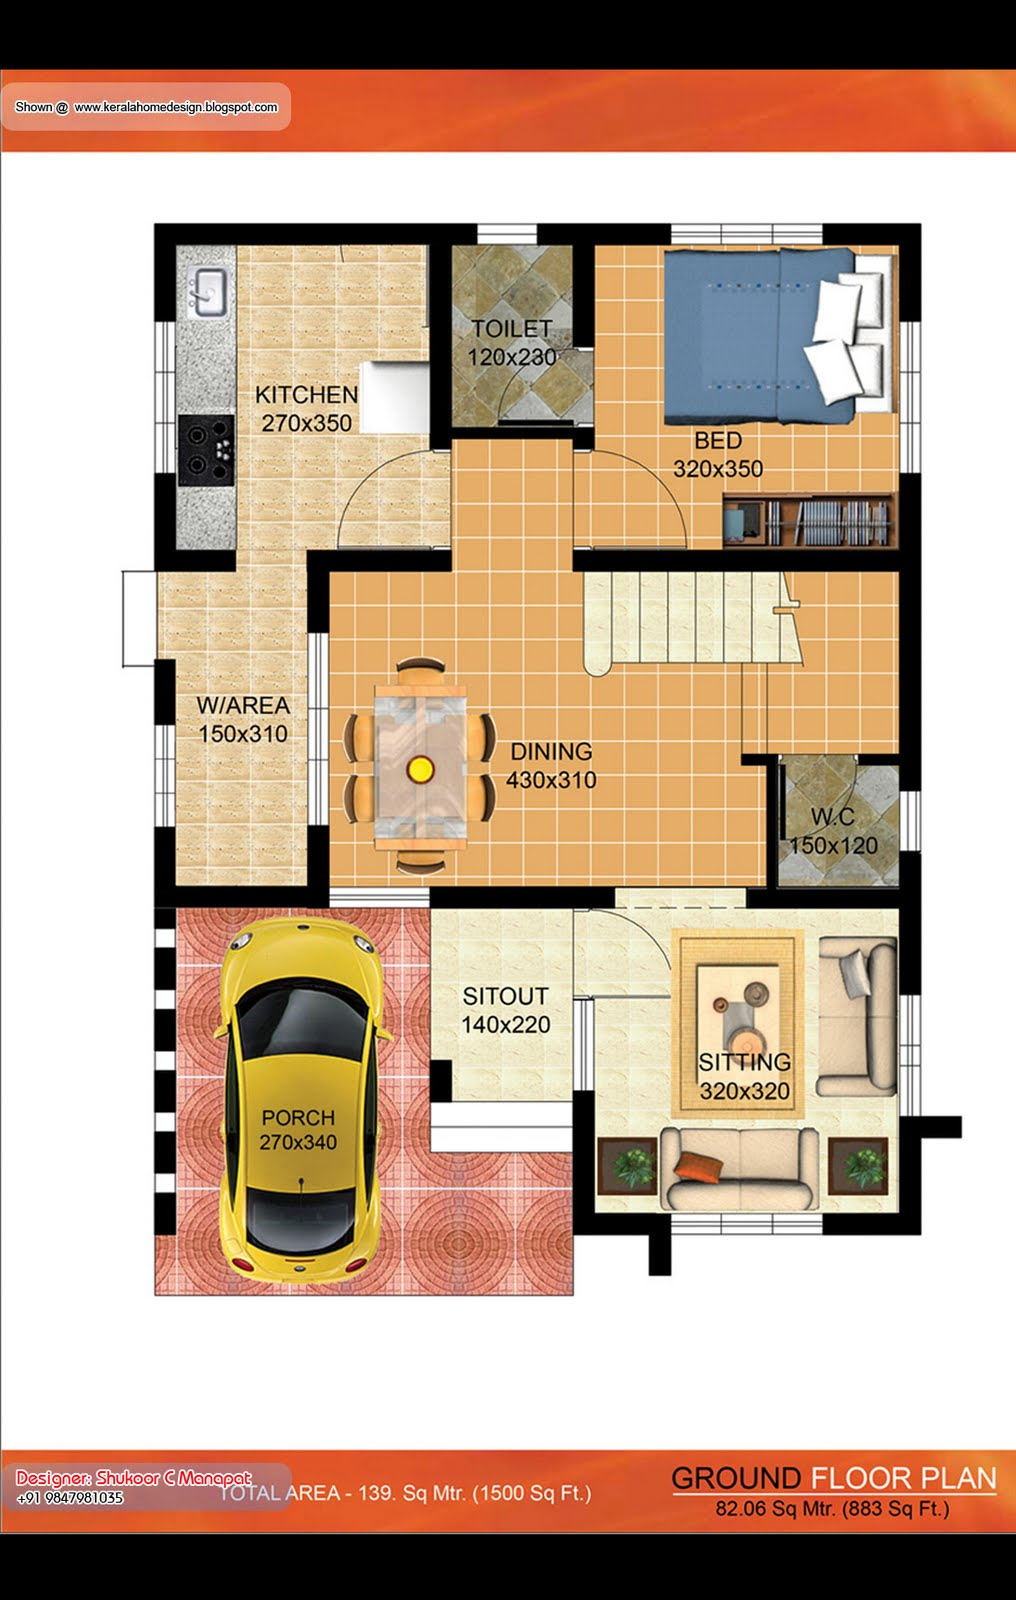 Kerala villa plan 1500 sq ft architecture house plans for 1500 sq ft house plans kerala